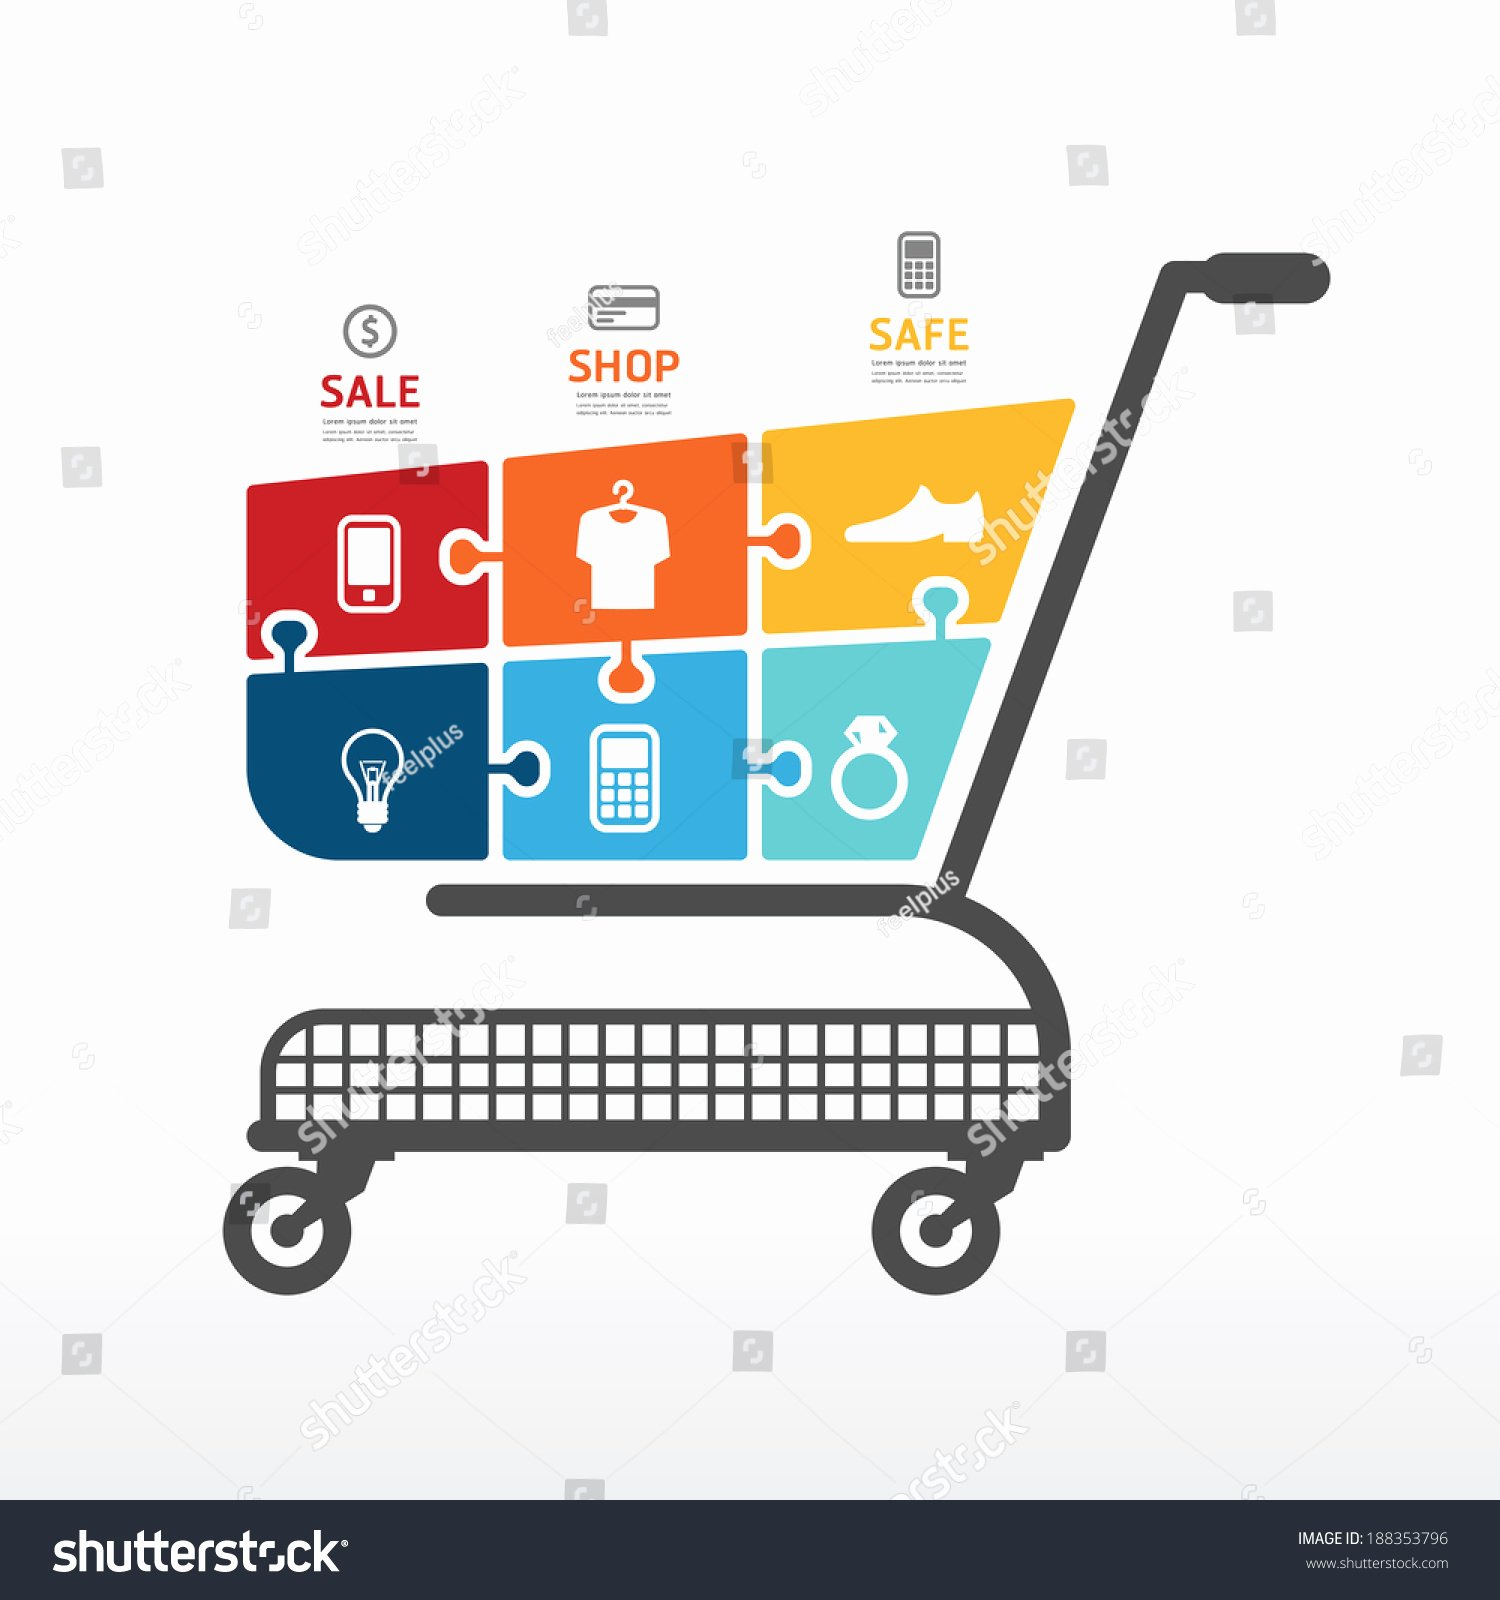 Shopping Cart HTML Template New Infographic Template with Shopping Cart Jigsaw Banner